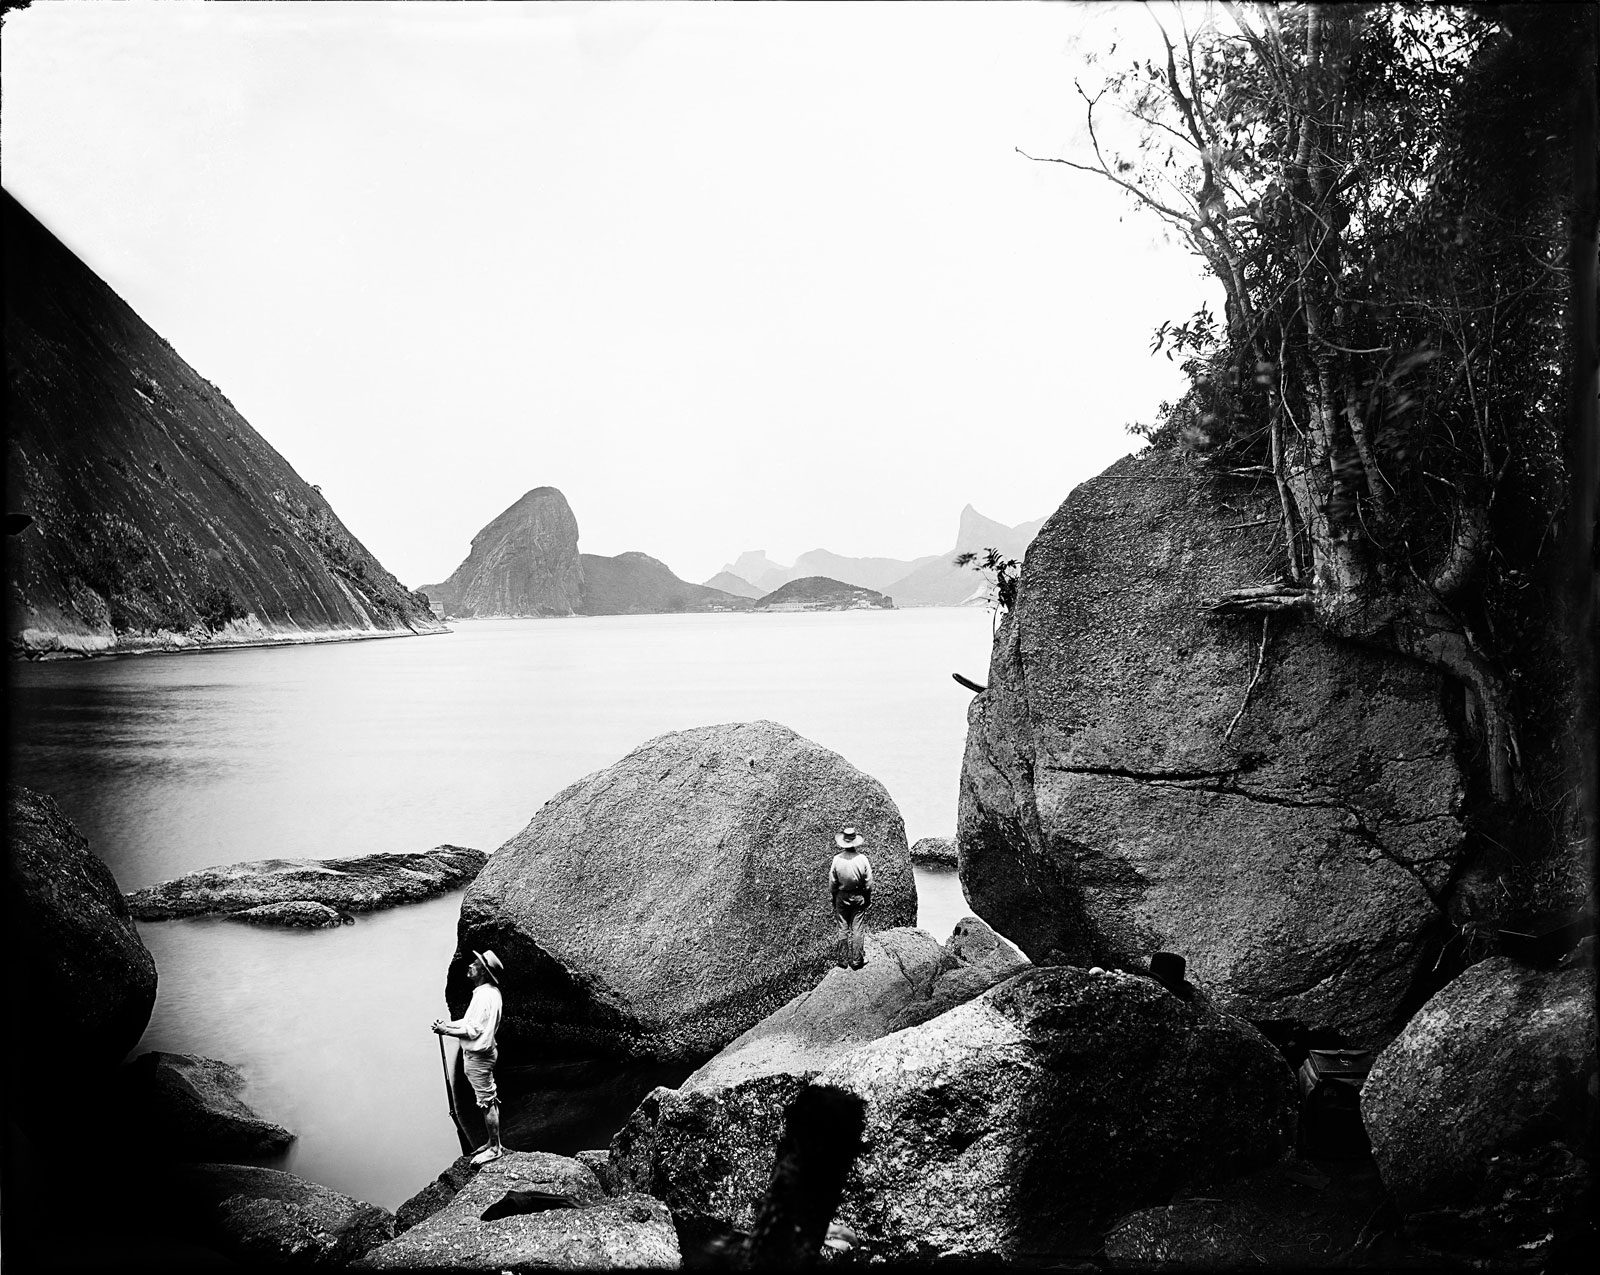 Entrance to Guanabara bay from Adão e Eva (Adam and Eve Beach), Niterói, circa 1890